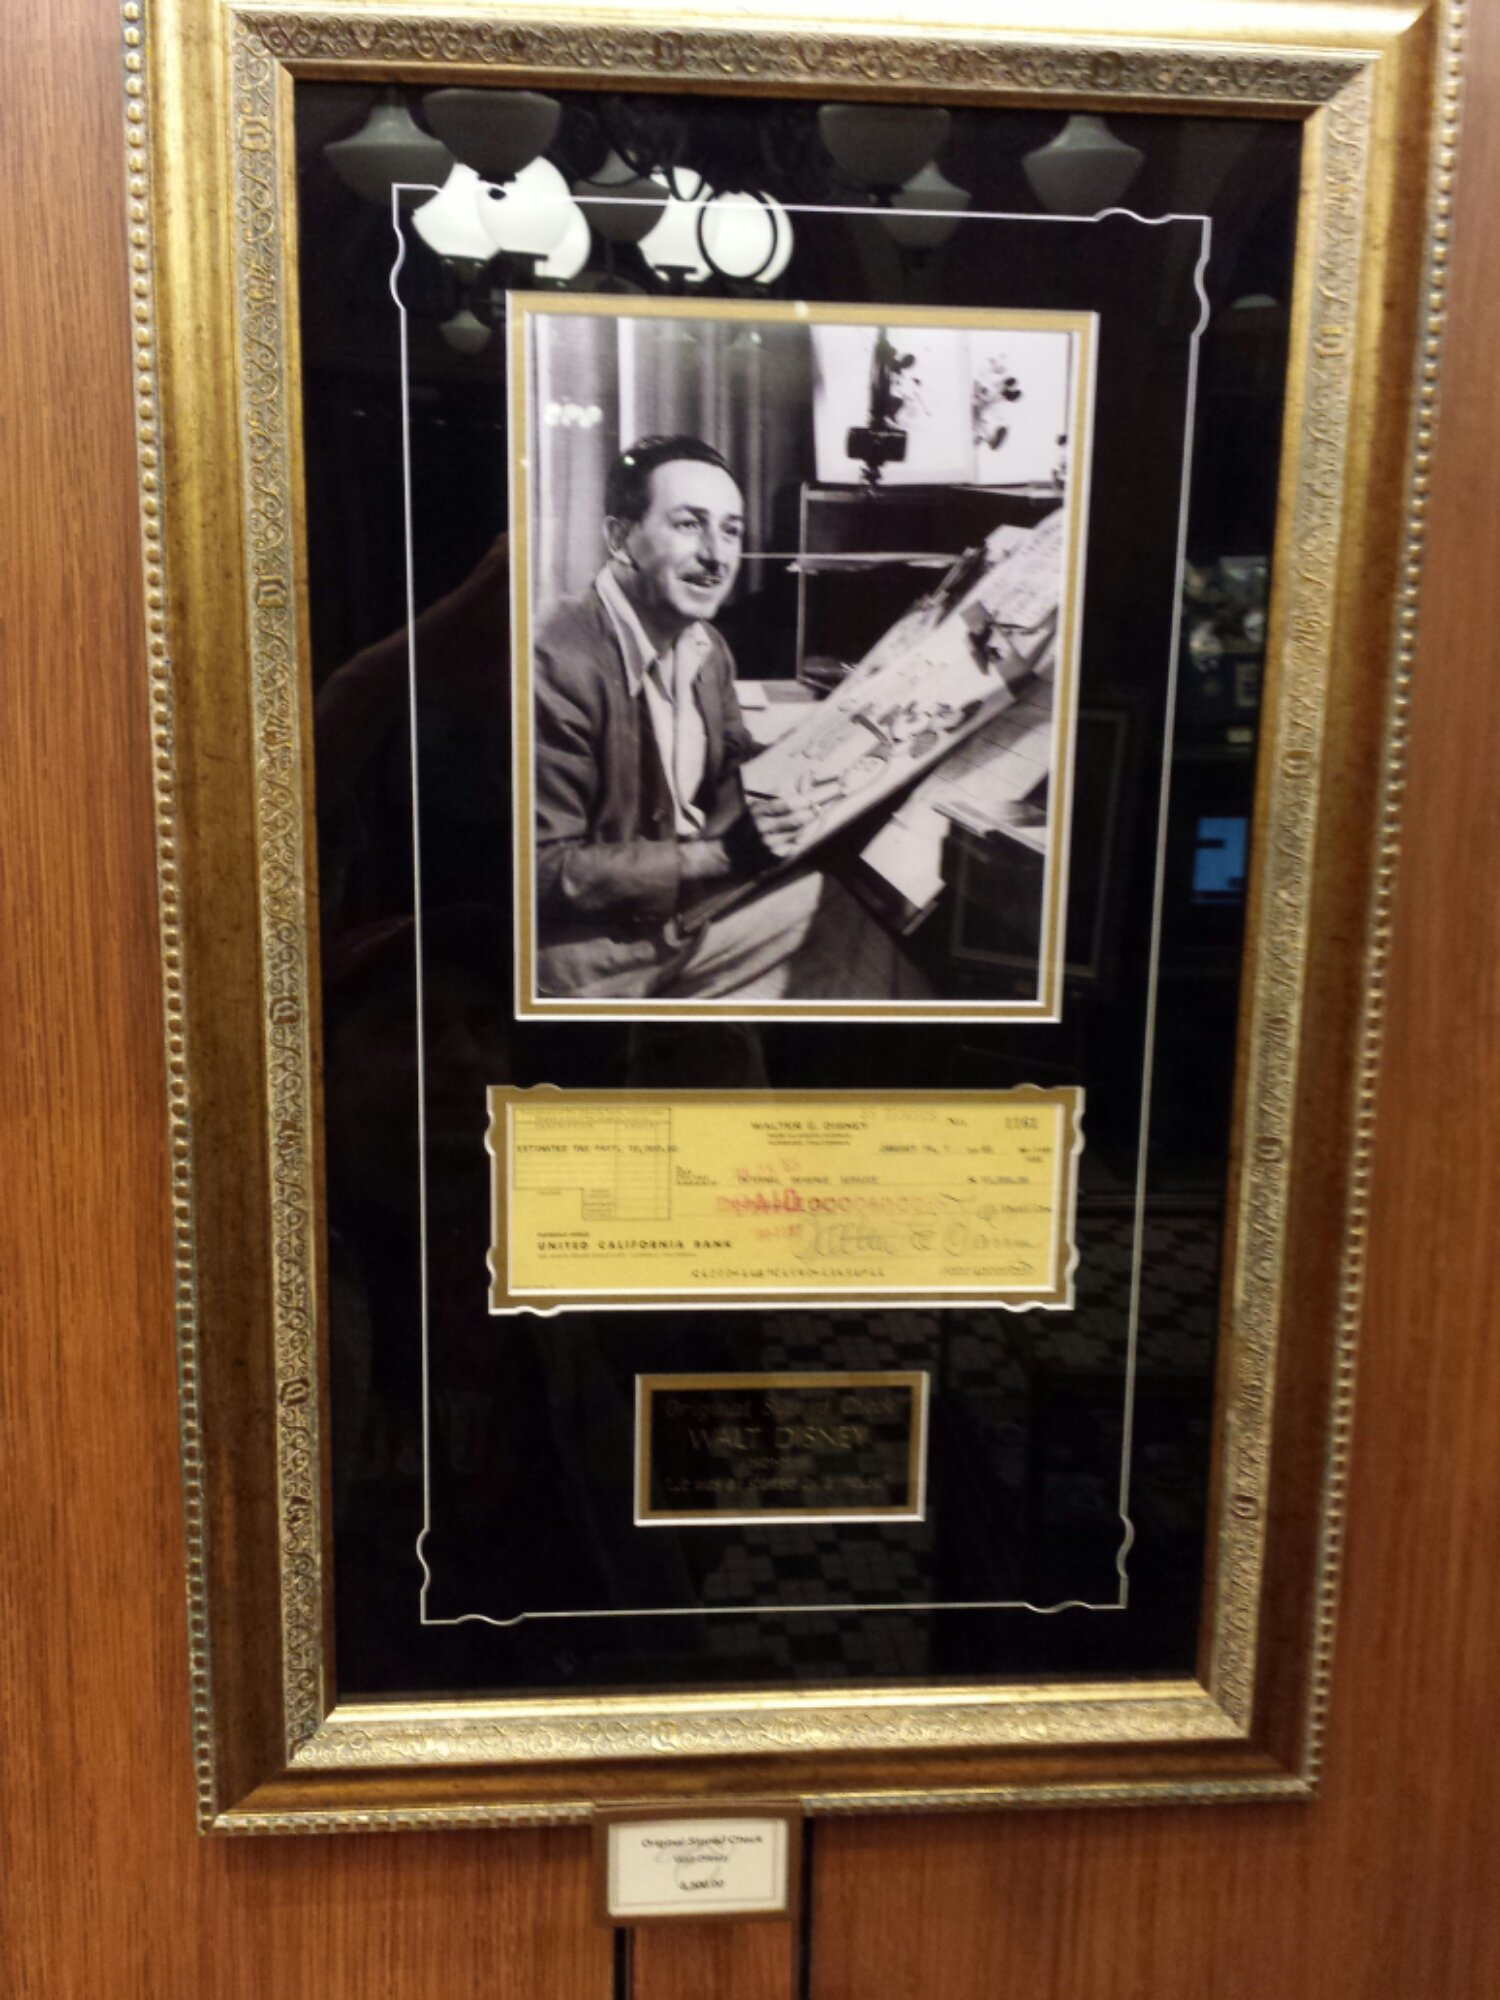 Anyone interested in an original check signed by Walt Disney?  It was for $10k of estimated taxes in 1965, today selling for $5,500 in Disneyana